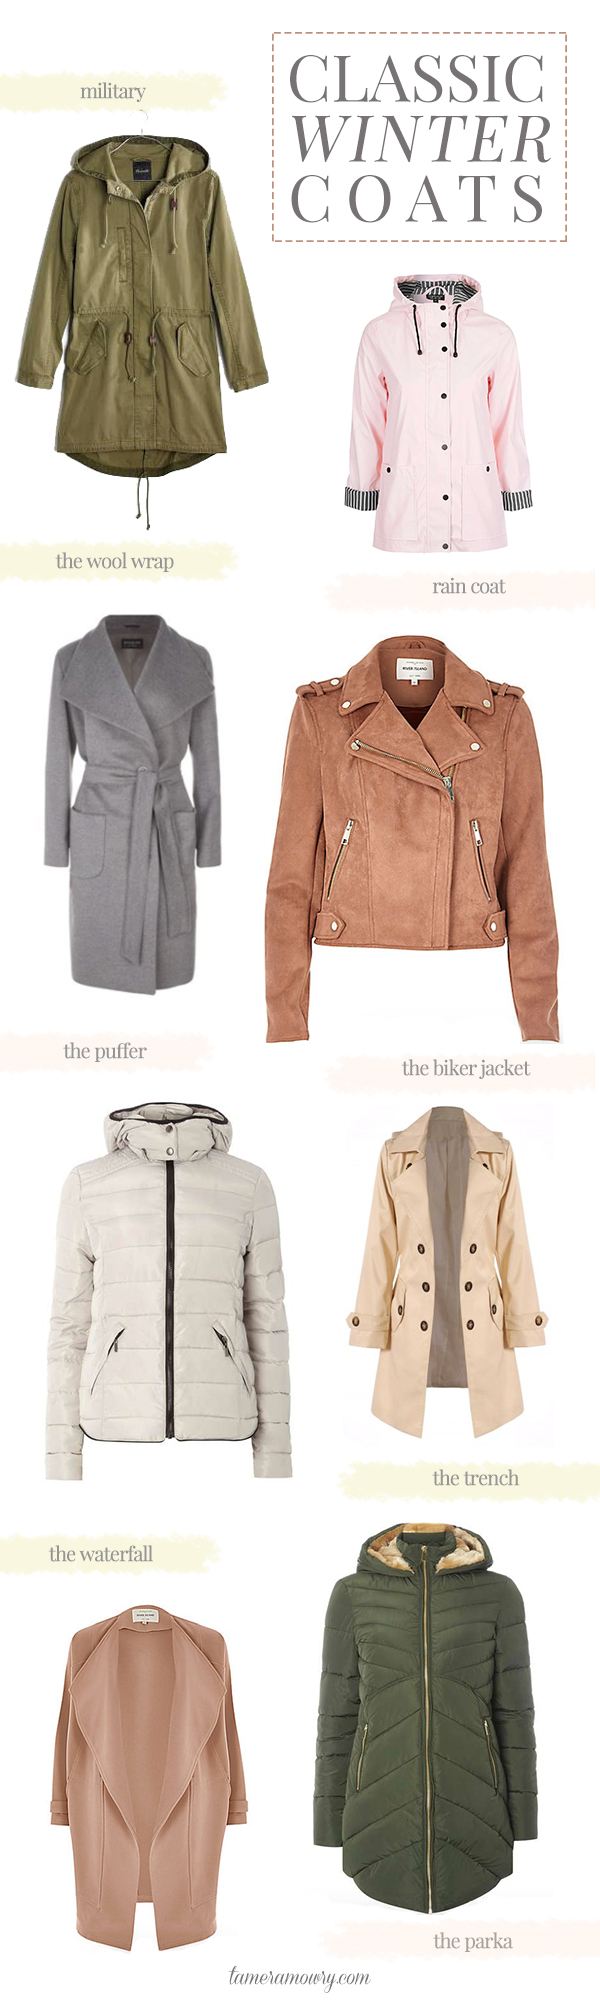 8 Classic Winter Coats That Never Go Out Of Style - Tamera Mowry